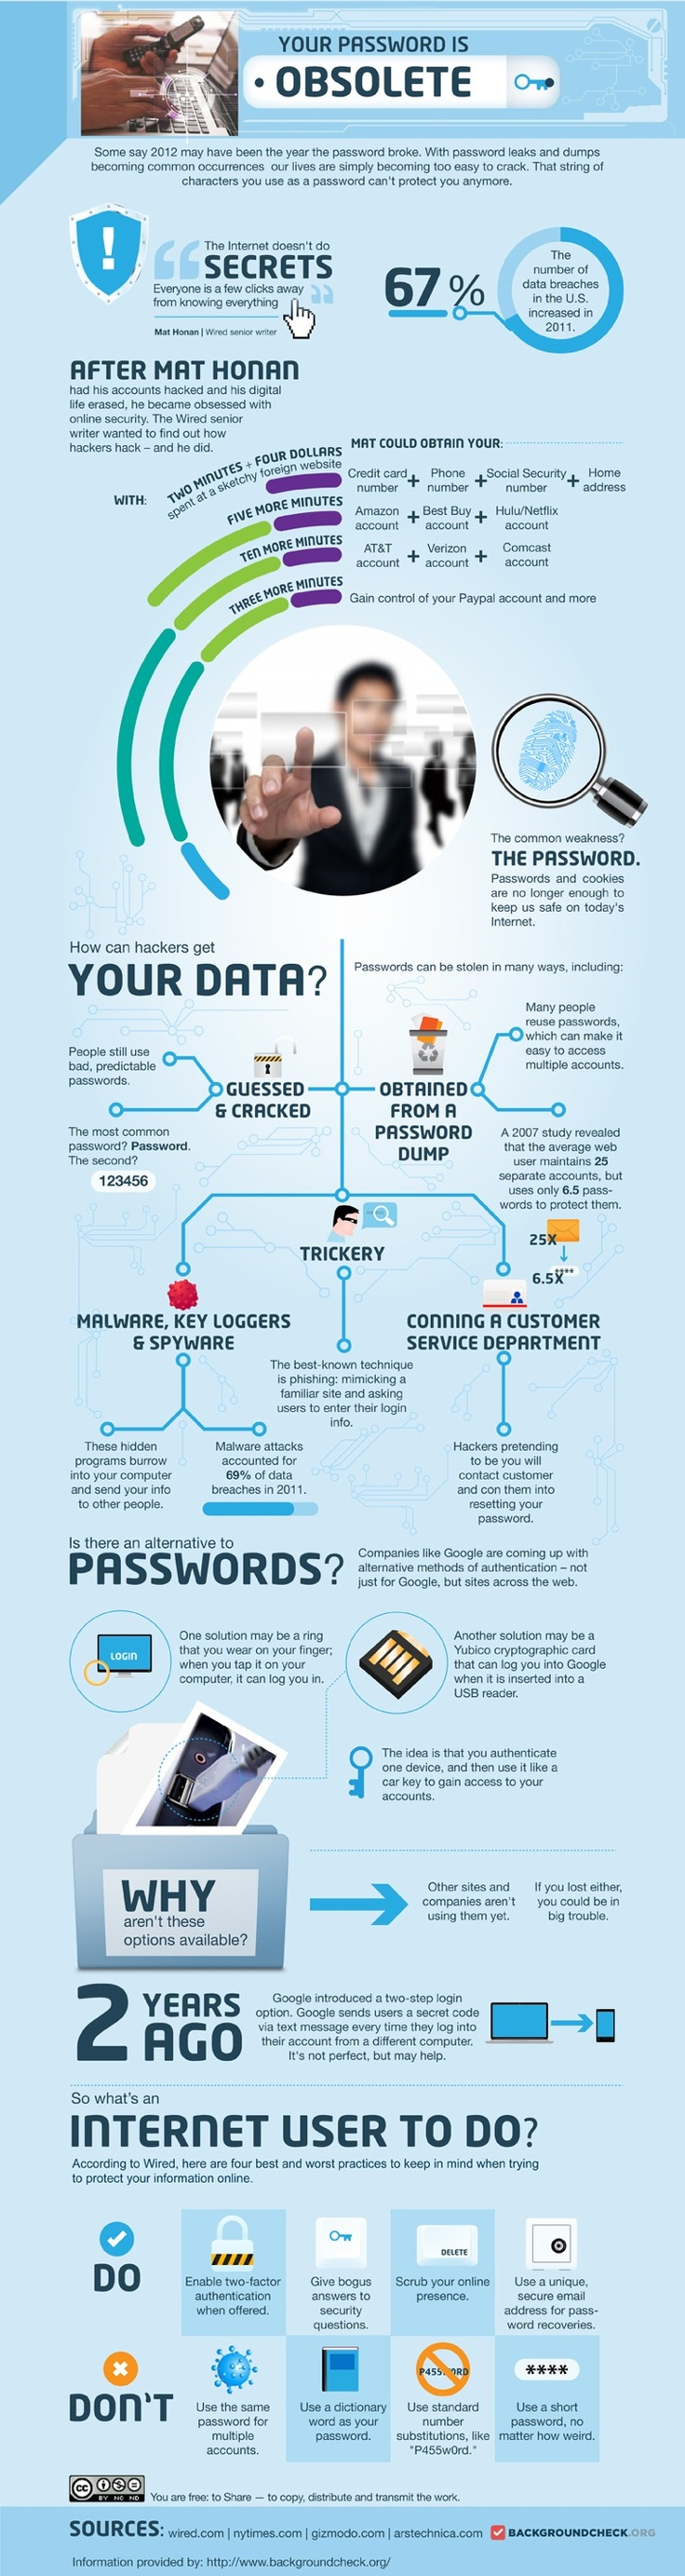 Passwords, Security and the Future of Authentication [#Infographic]